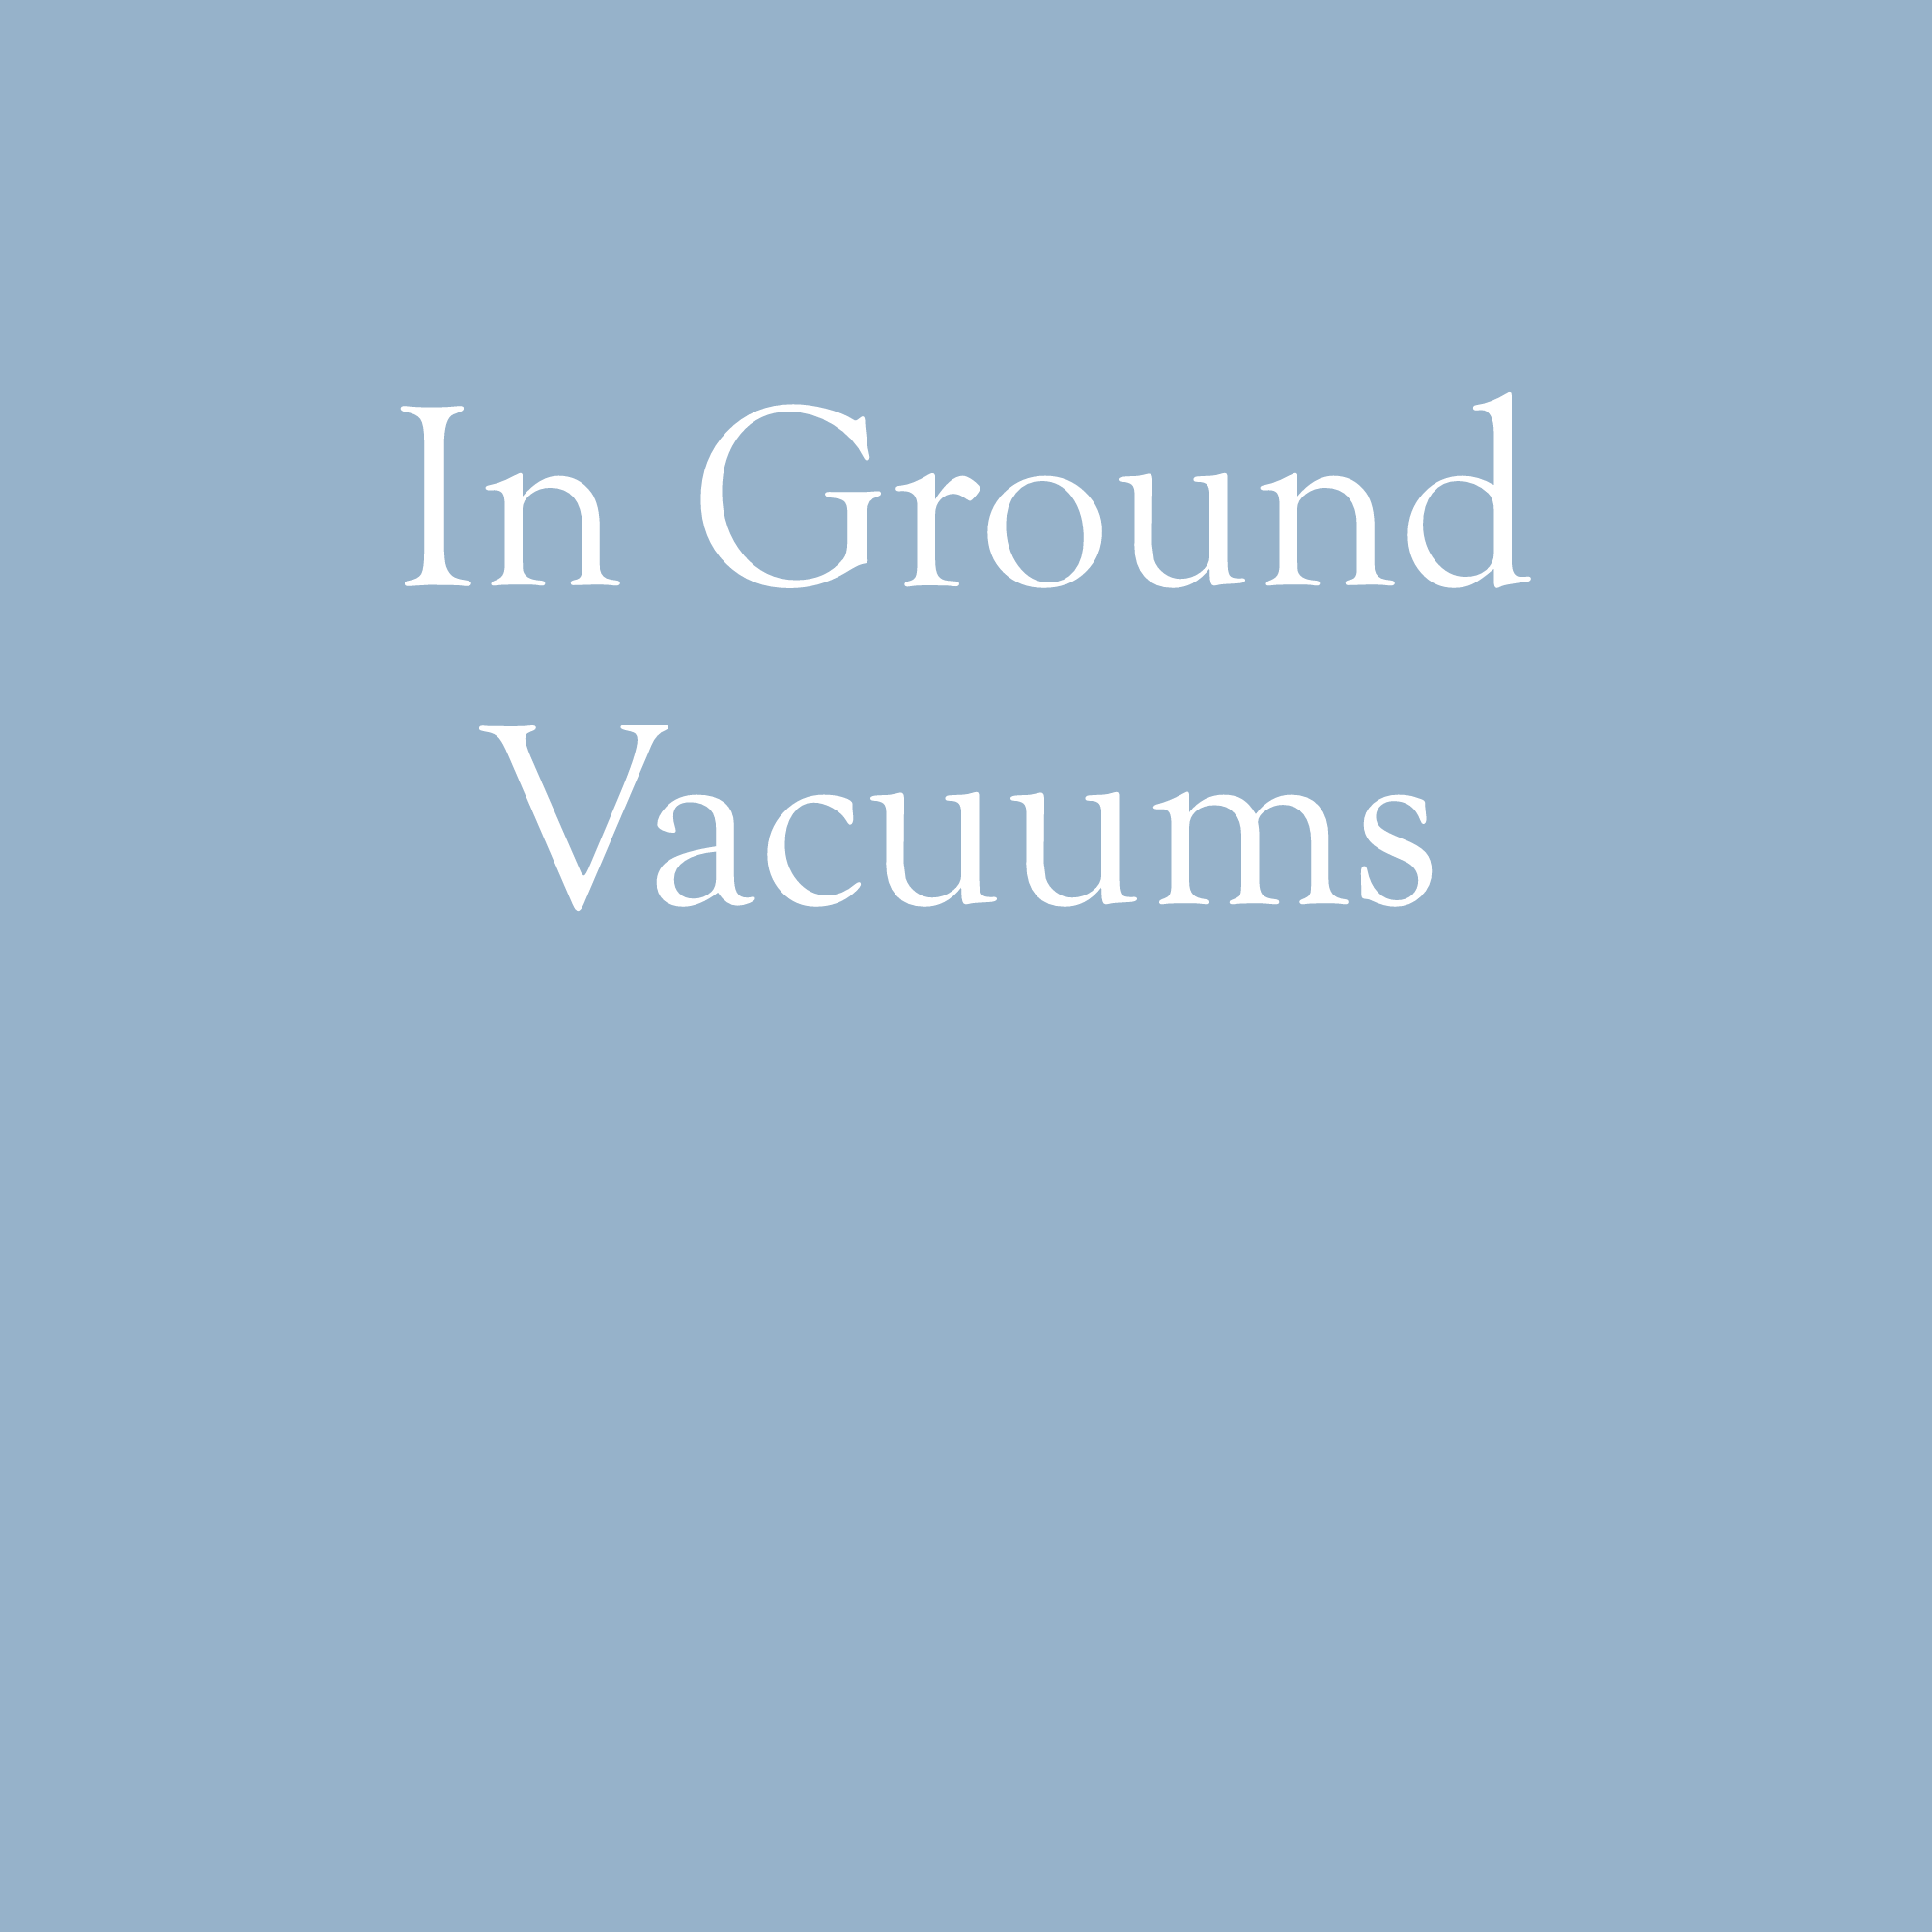 In Ground Vacuums